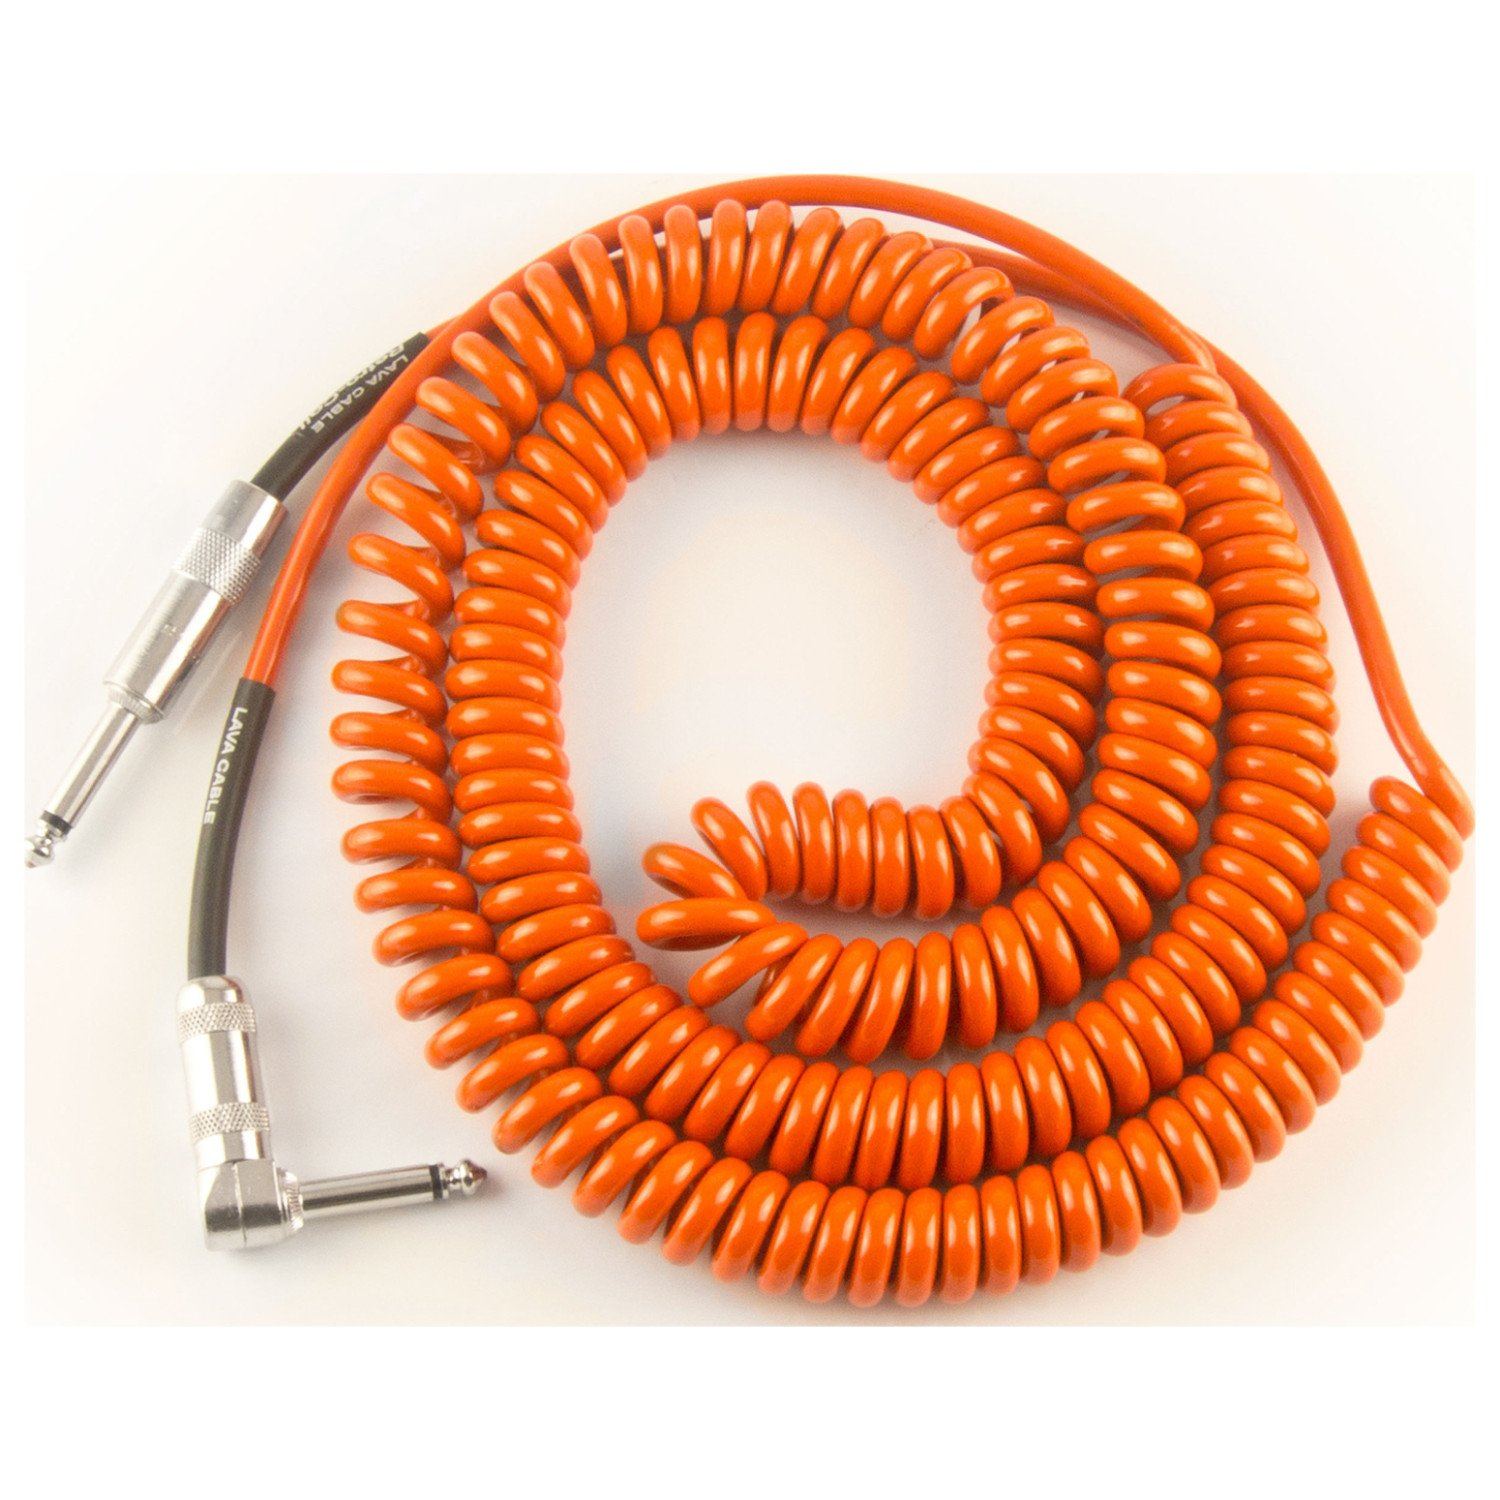 Lava Cable Retro Coil Silent Instrument Cable Orange, 20 Feet Angled-Straight